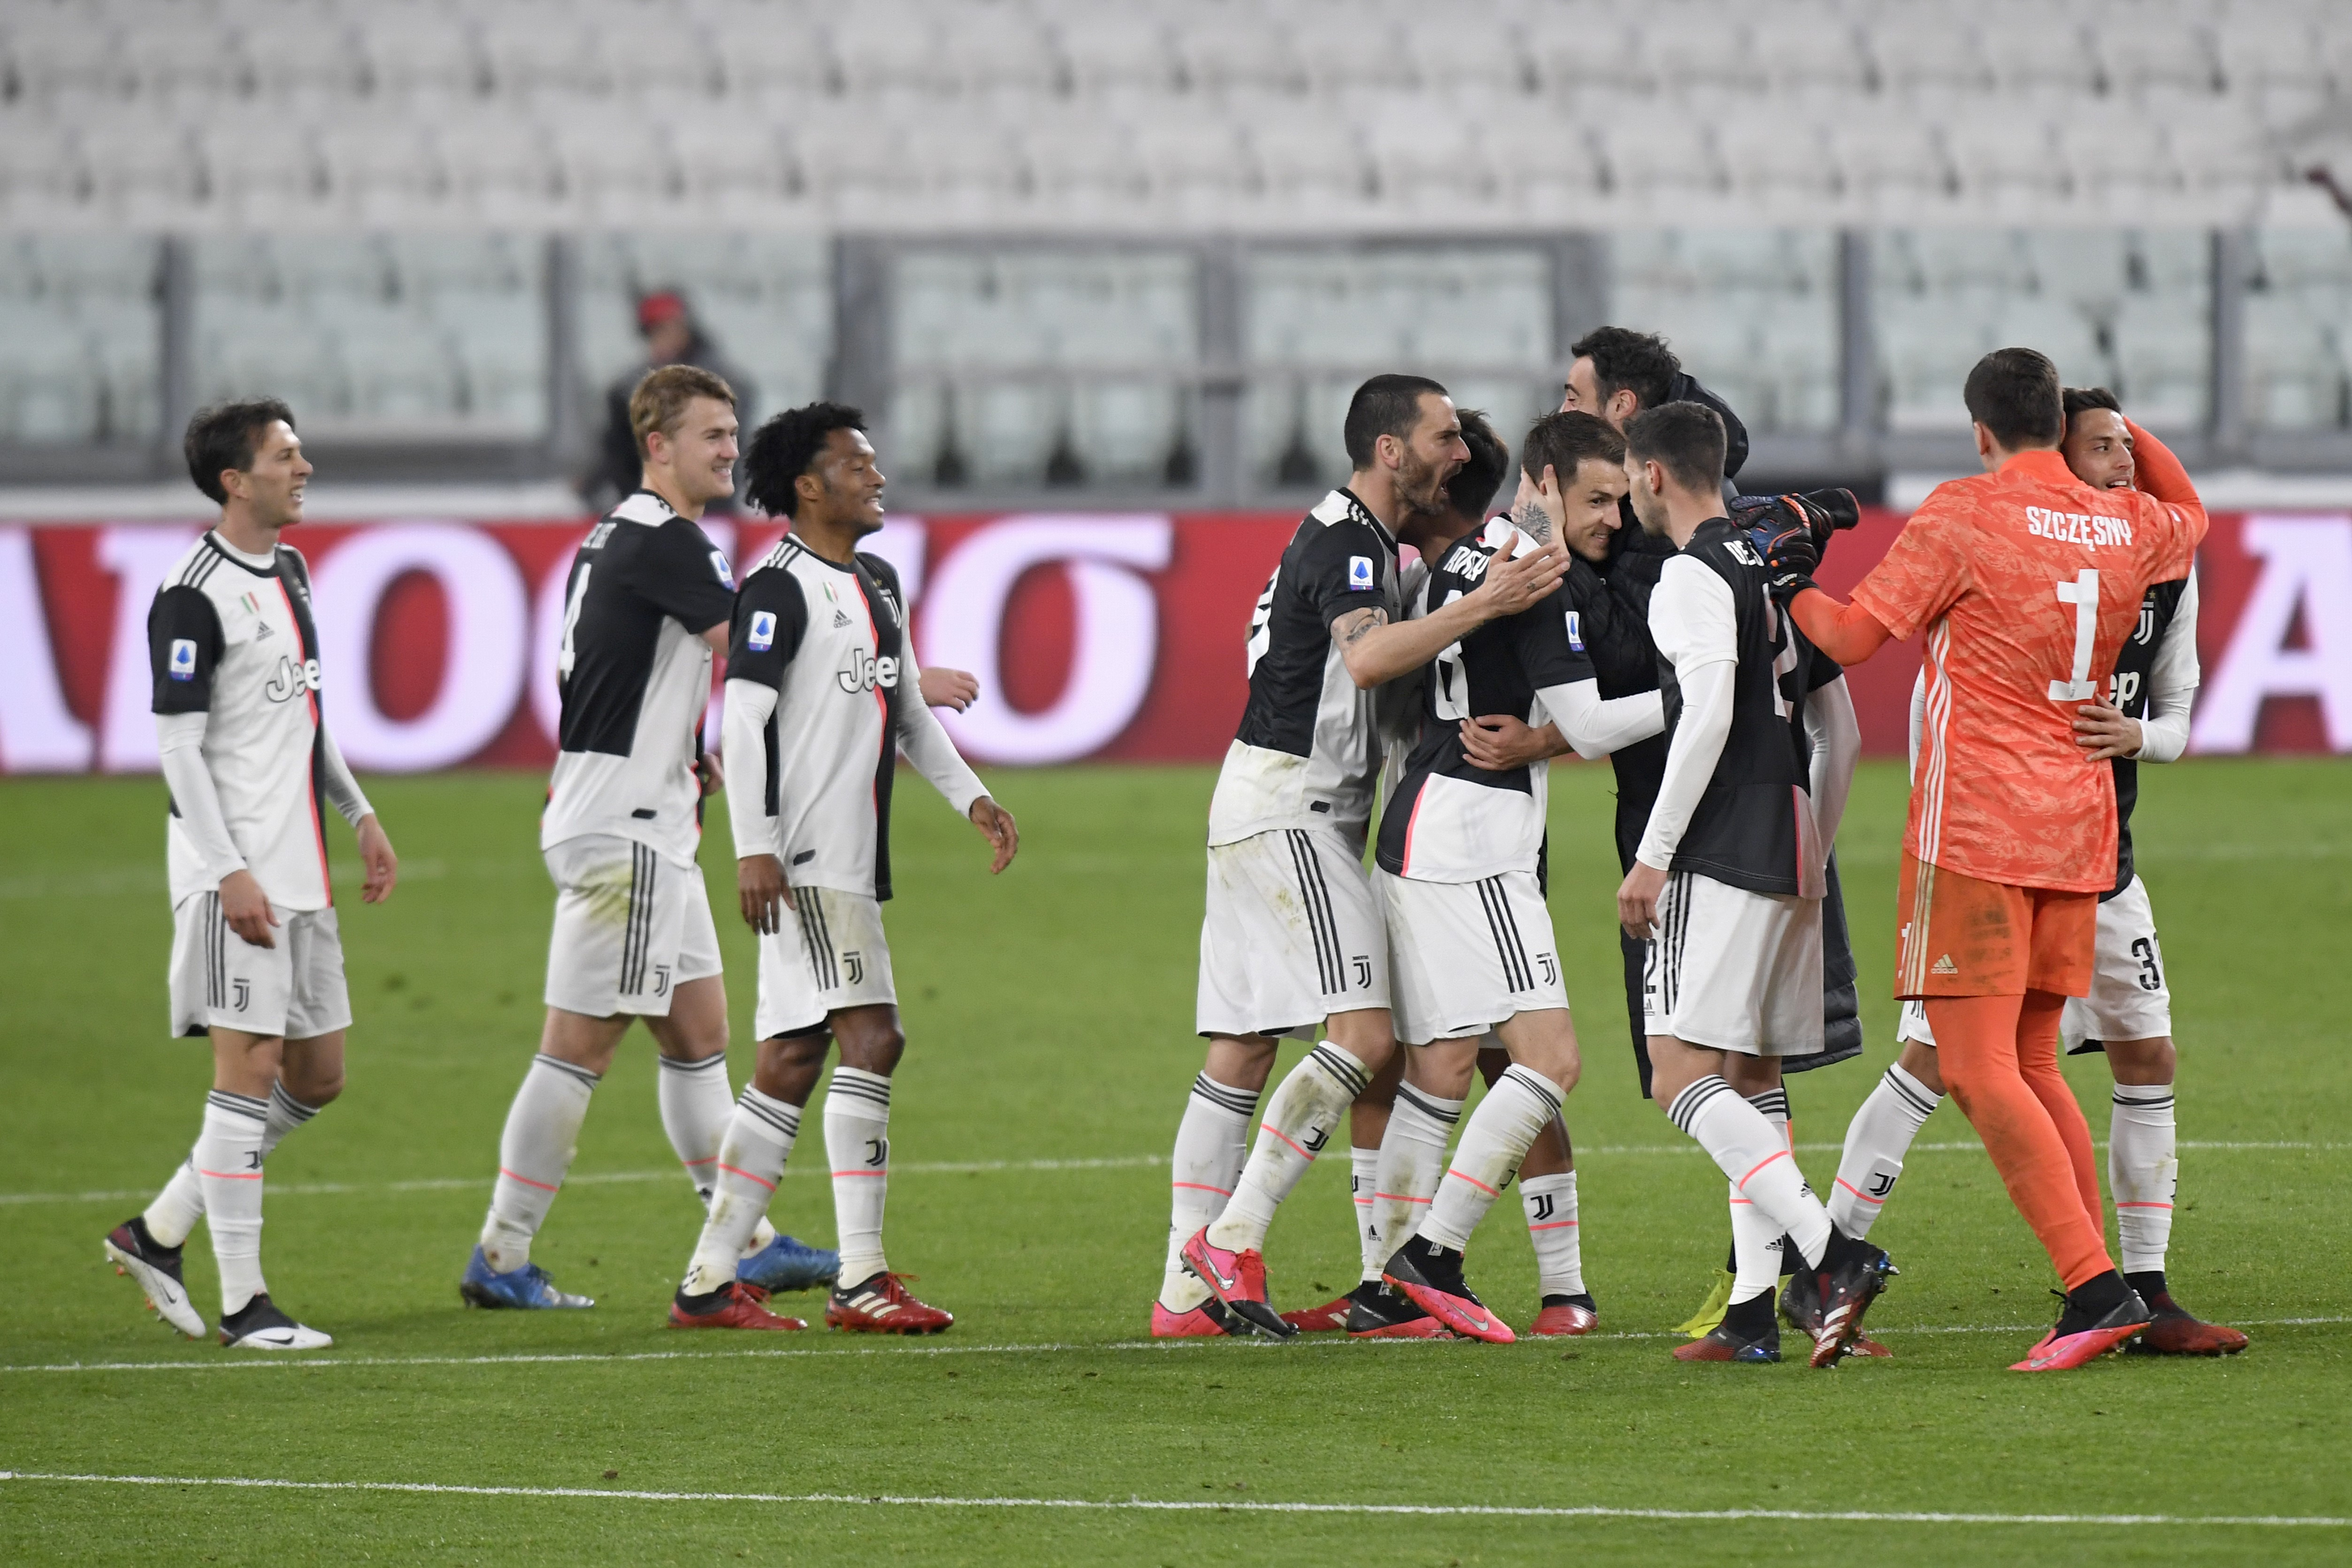 Juventus players celebrate after winning the Serie A match between Juventus and FC Internazionale at Allianz Stadium played behind closed doors after rules to limit the spread of Covid-19 have been put in place on March 8, 2020 in Turin, Italy.